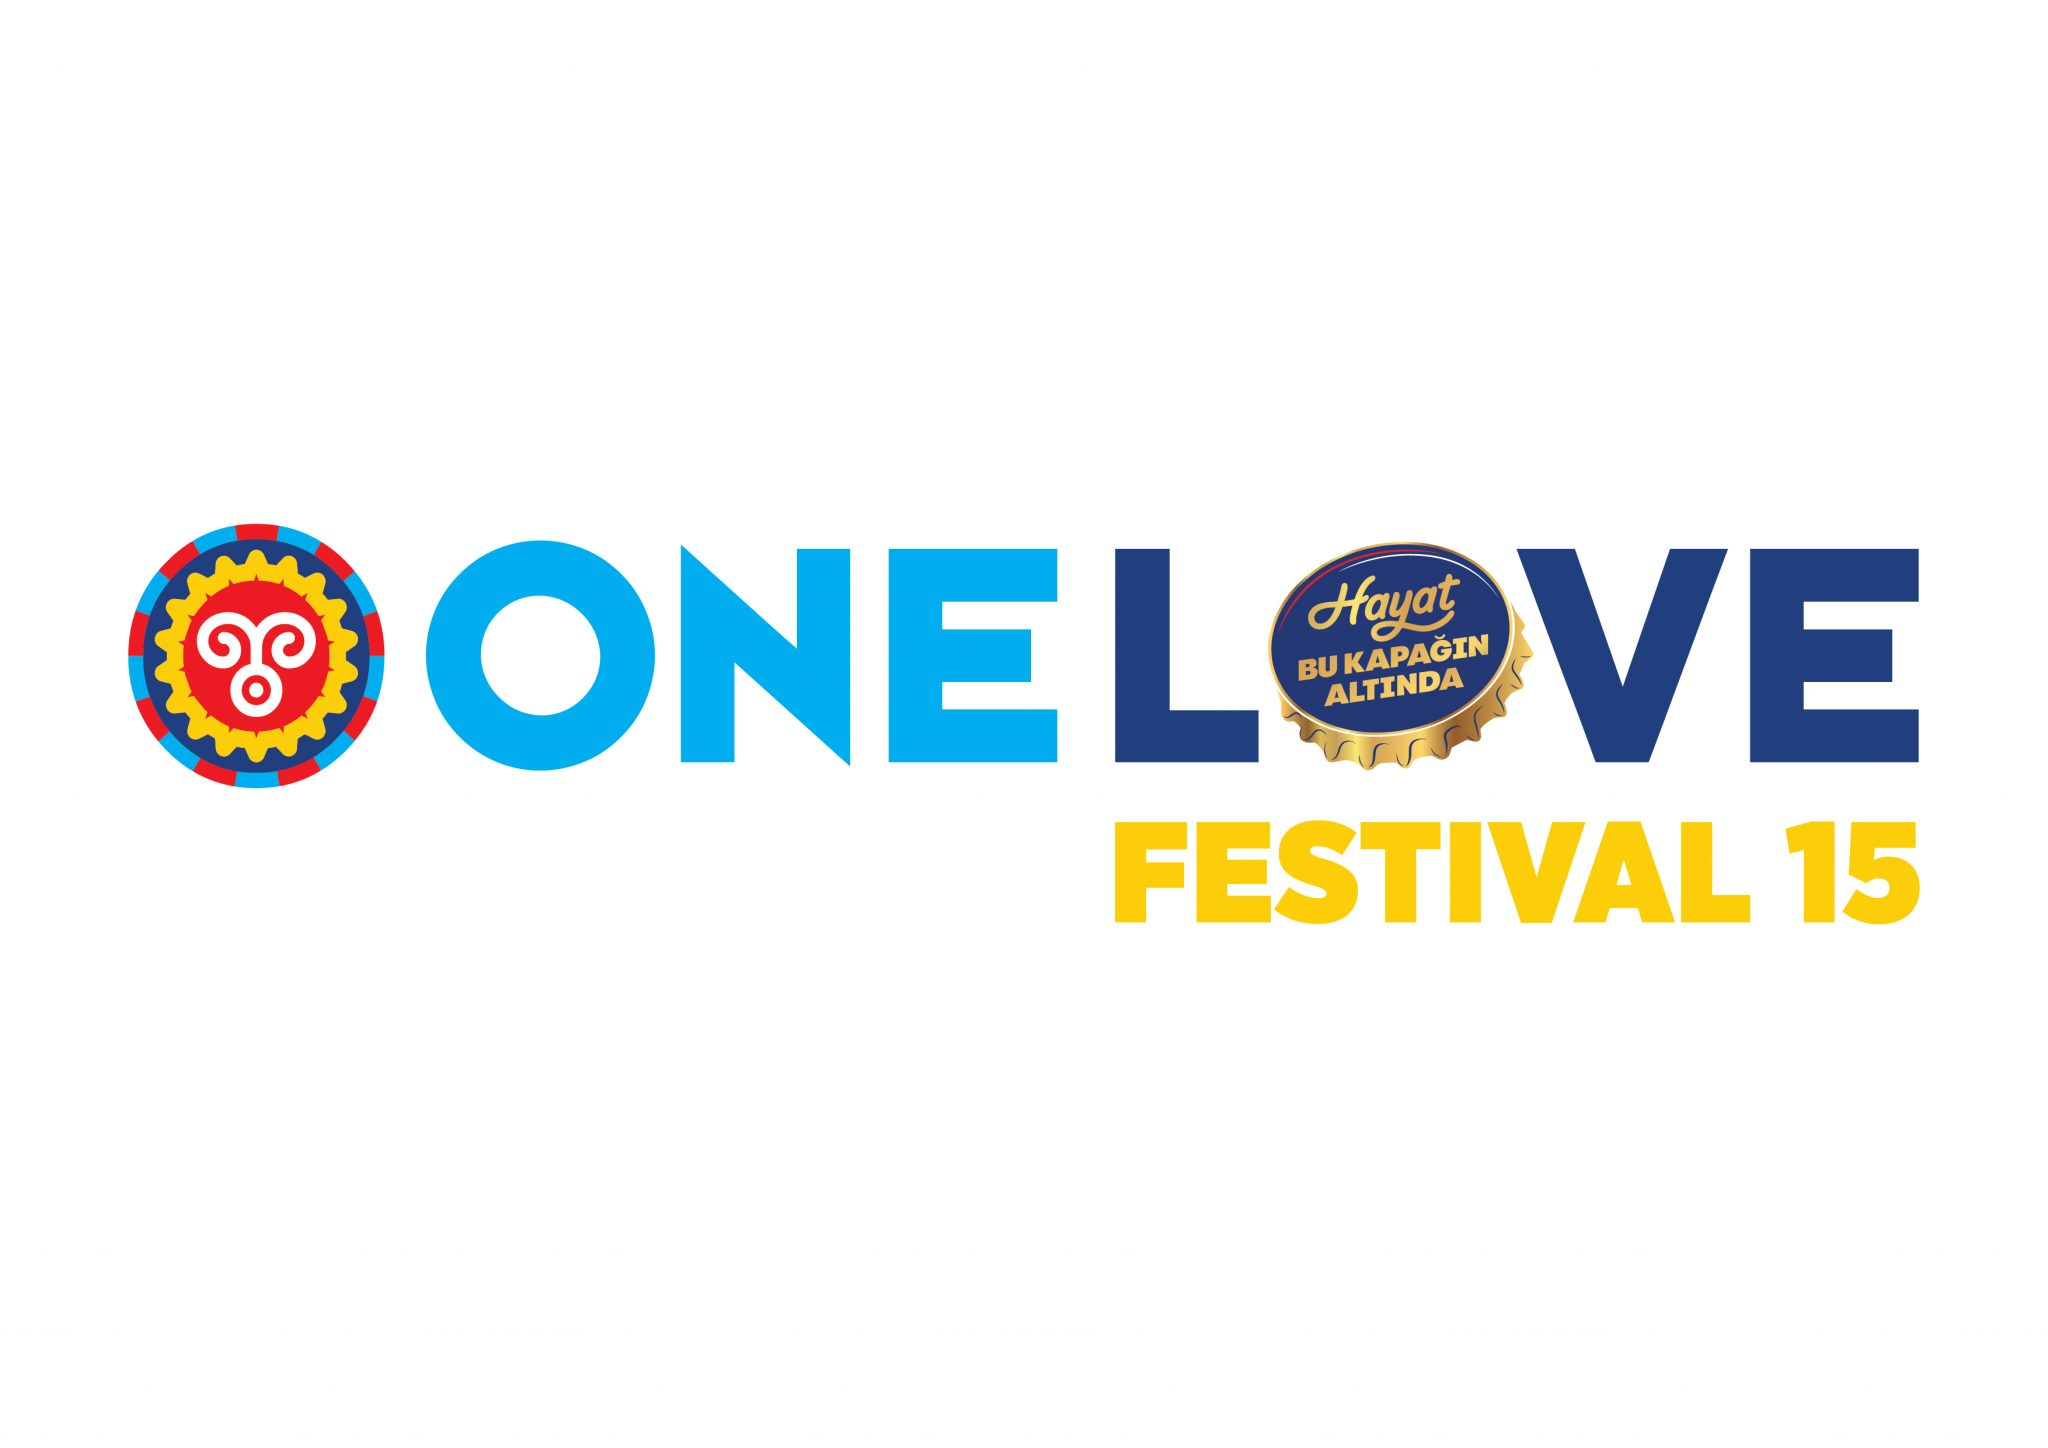 One Love Festival 15'in kadrosu belli oldu